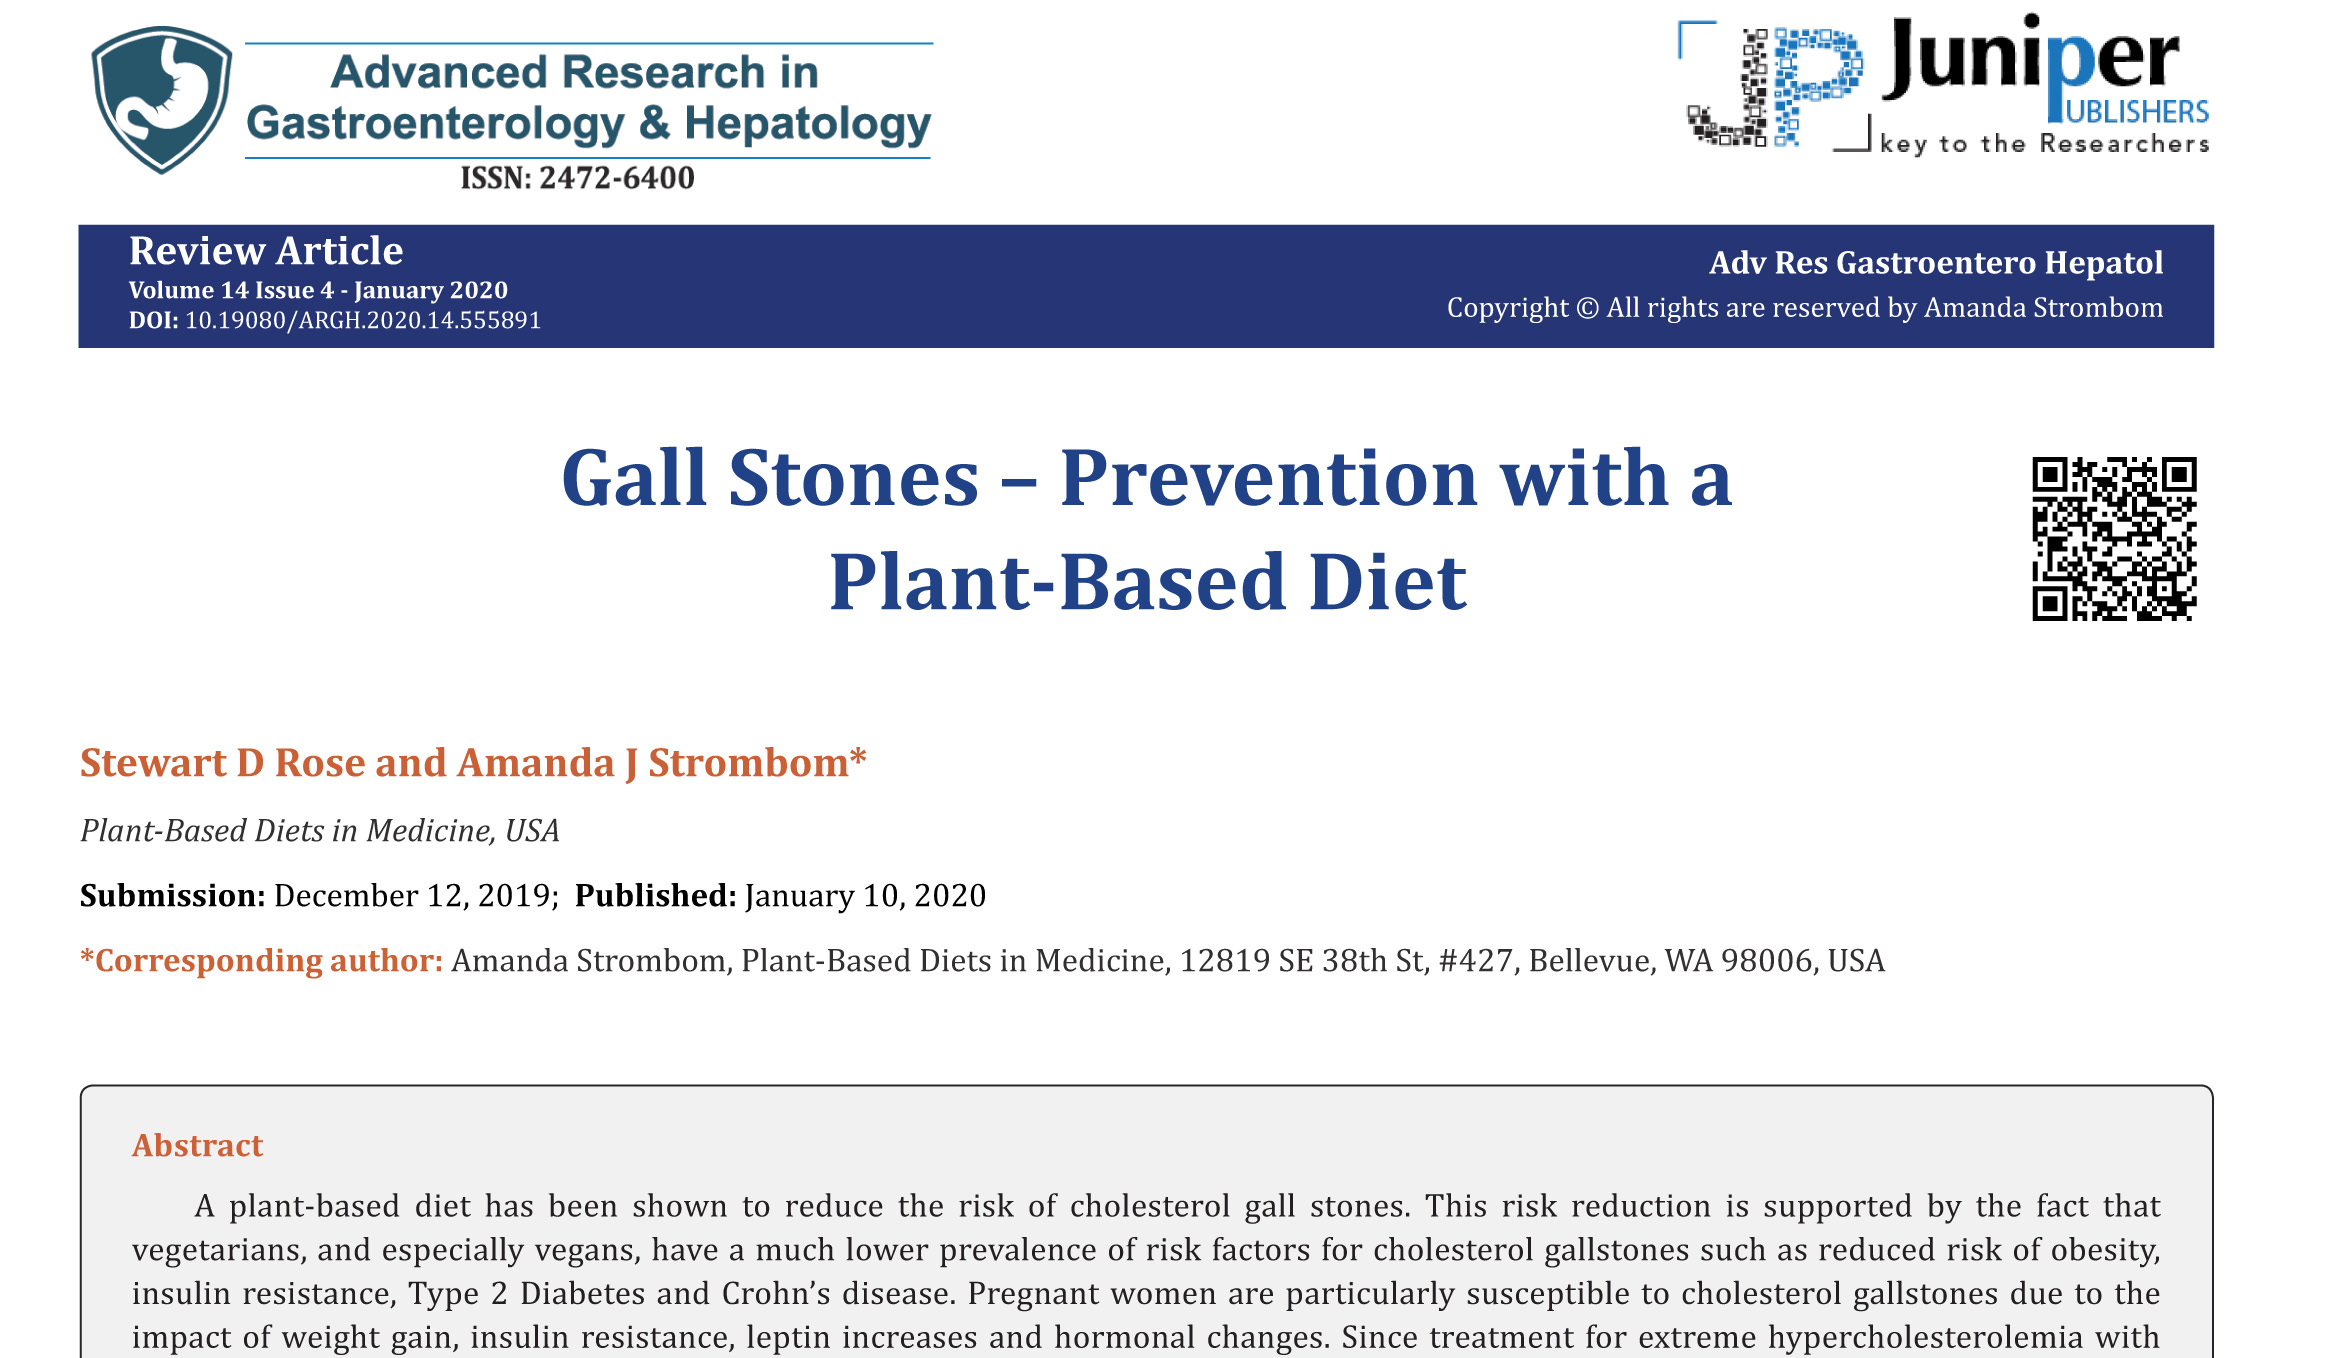 Gall Stones – Prevention with a Plant-Based Diet